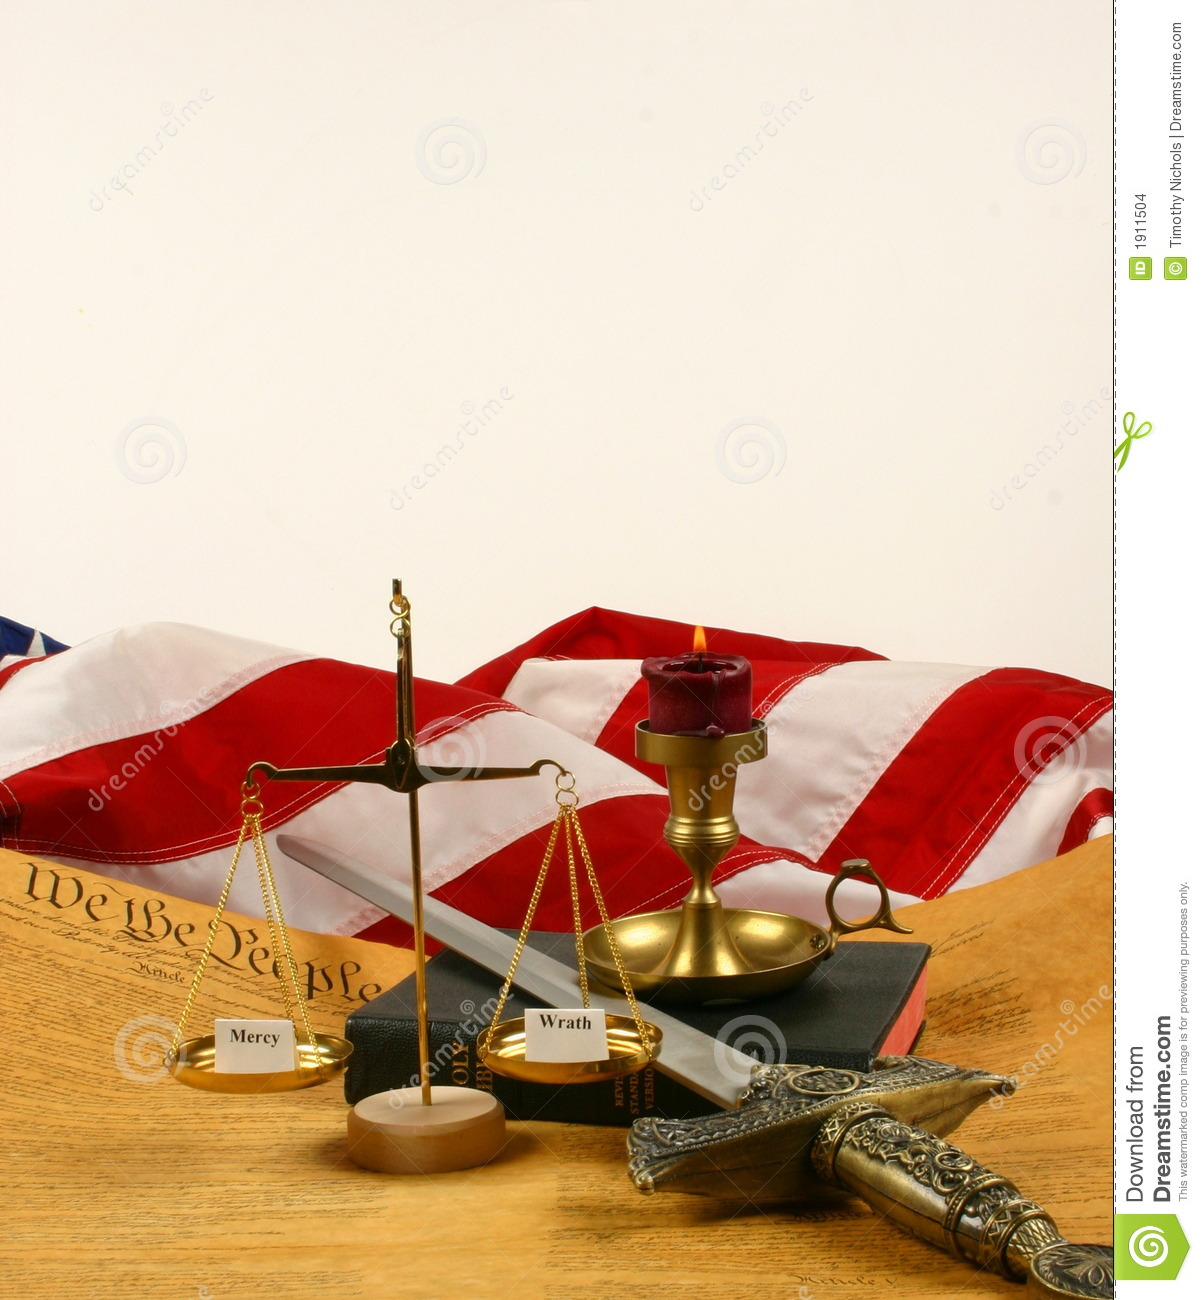 United States Constitution, Bible, scales weighing